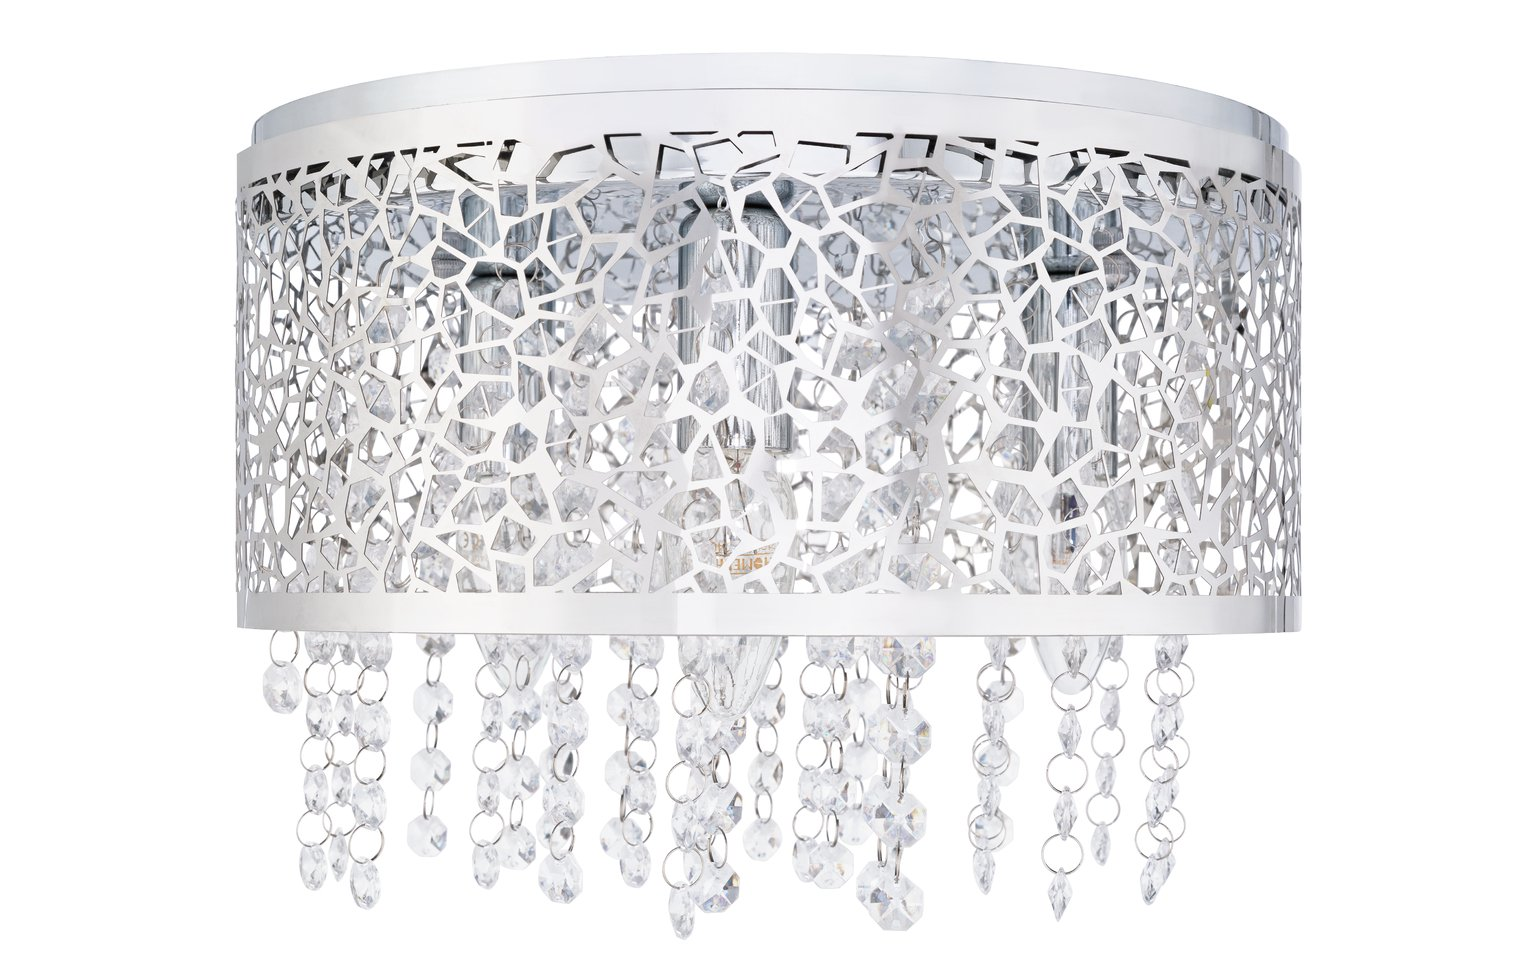 Argos Home Beaded Flush to Ceiling Light - Chrome